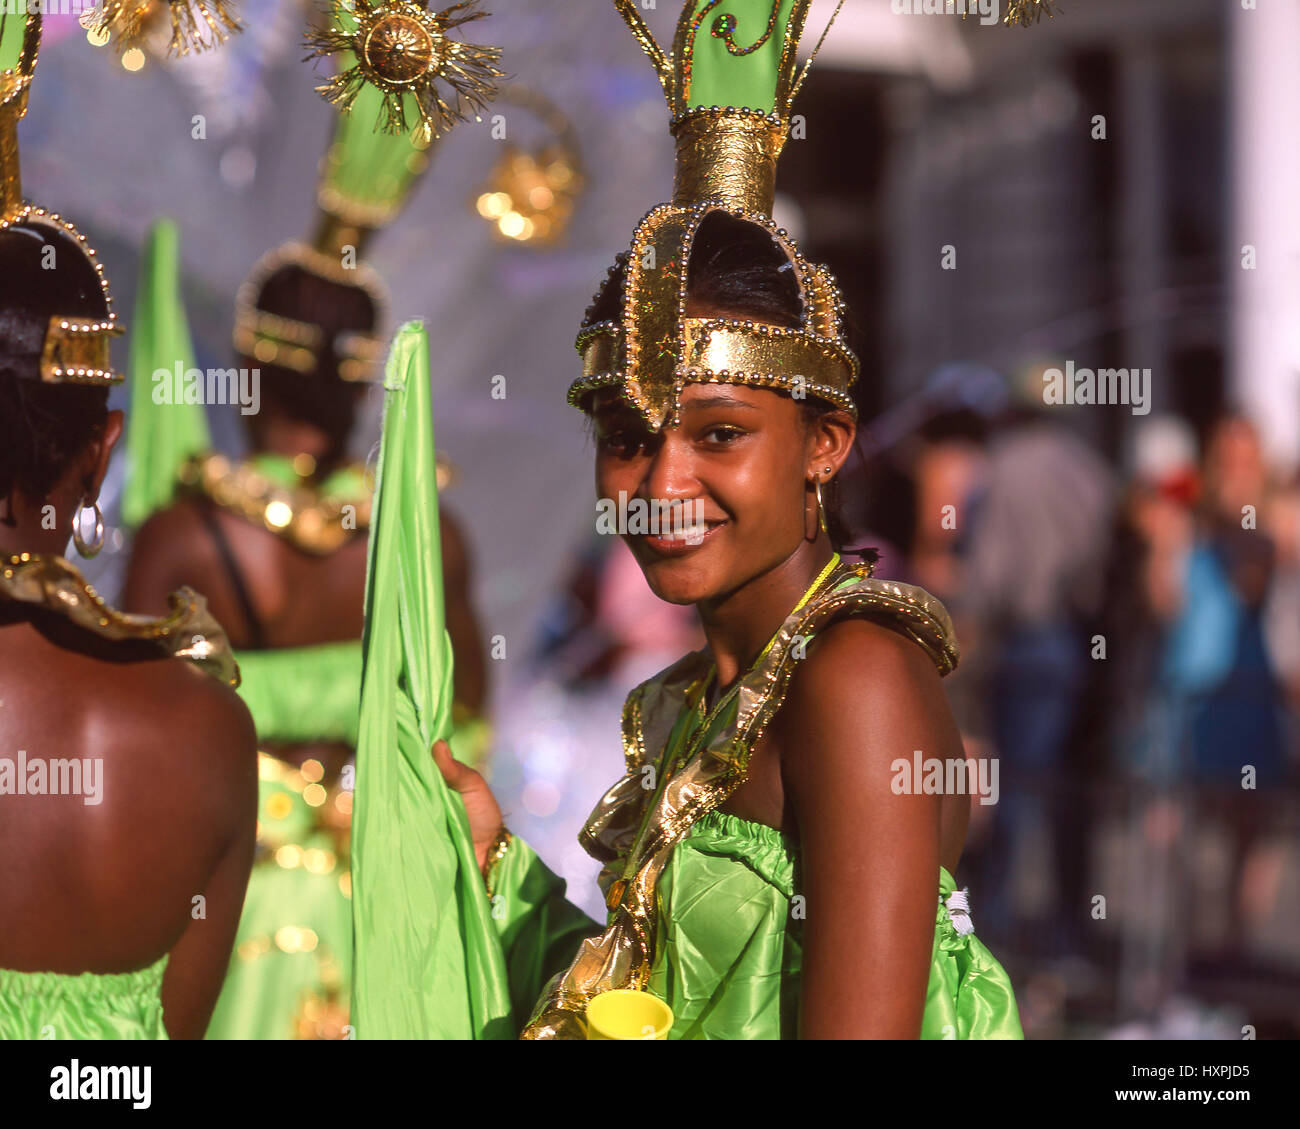 Smiling woman in costume at Notting Hill Carnival, Notting Hill, Royal Borough of Kensington and Chelsea, Greater - Stock Image